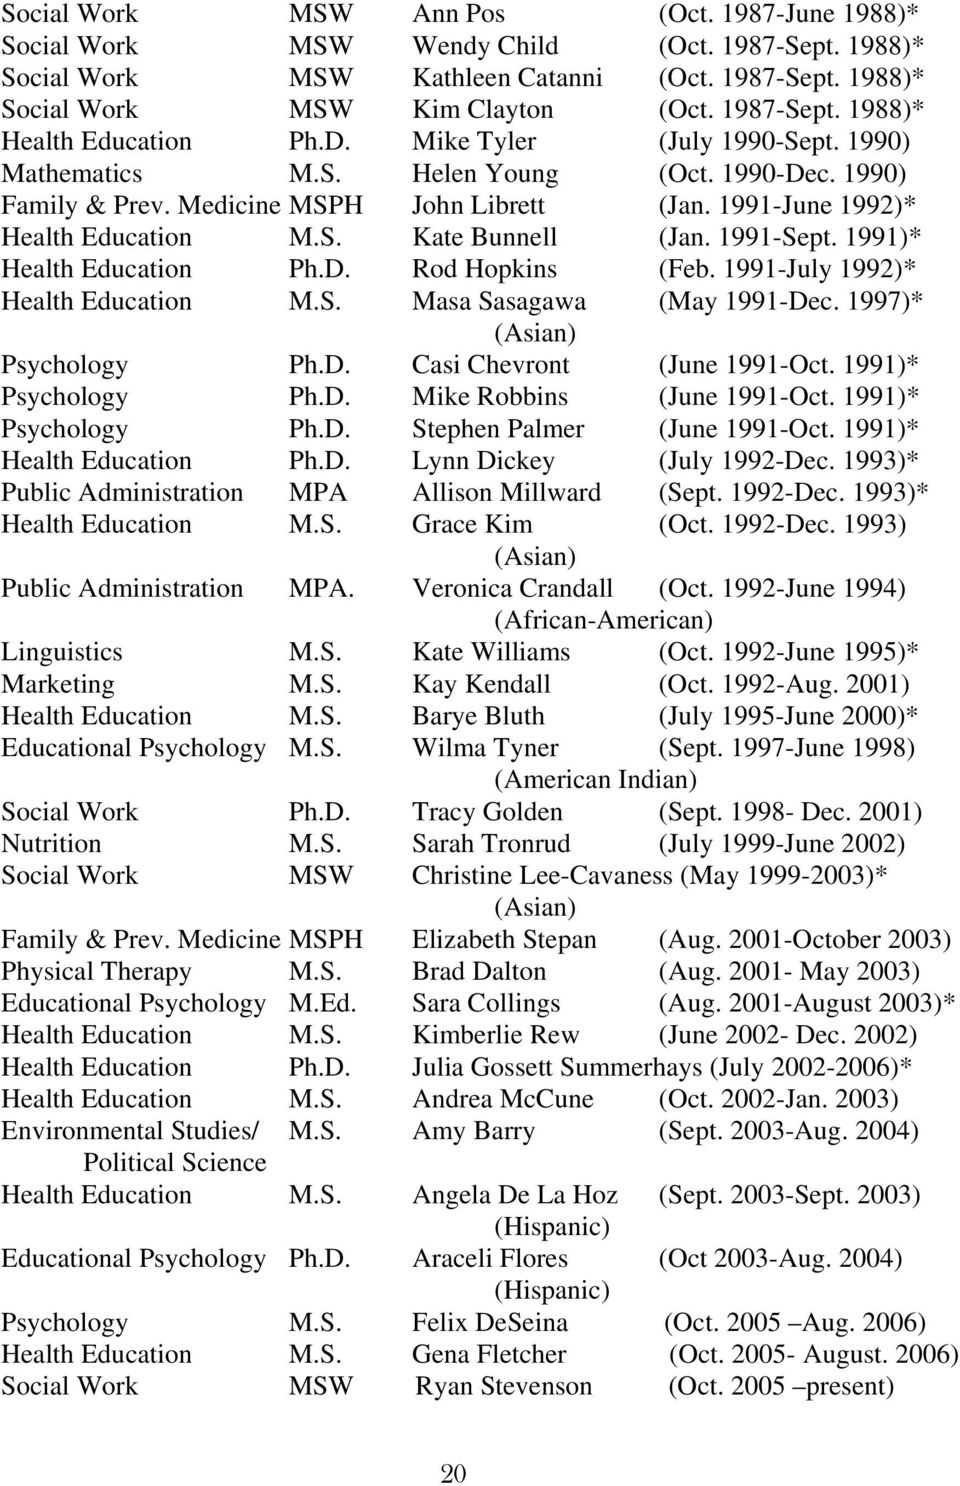 1991-Sept. 1991)* Health Education Ph.D. Rod Hopkins (Feb. 1991-July 1992)* Health Education M.S. Masa Sasagawa (May 1991-Dec. 1997)* (Asian) Psychology Ph.D. Casi Chevront (June 1991-Oct.